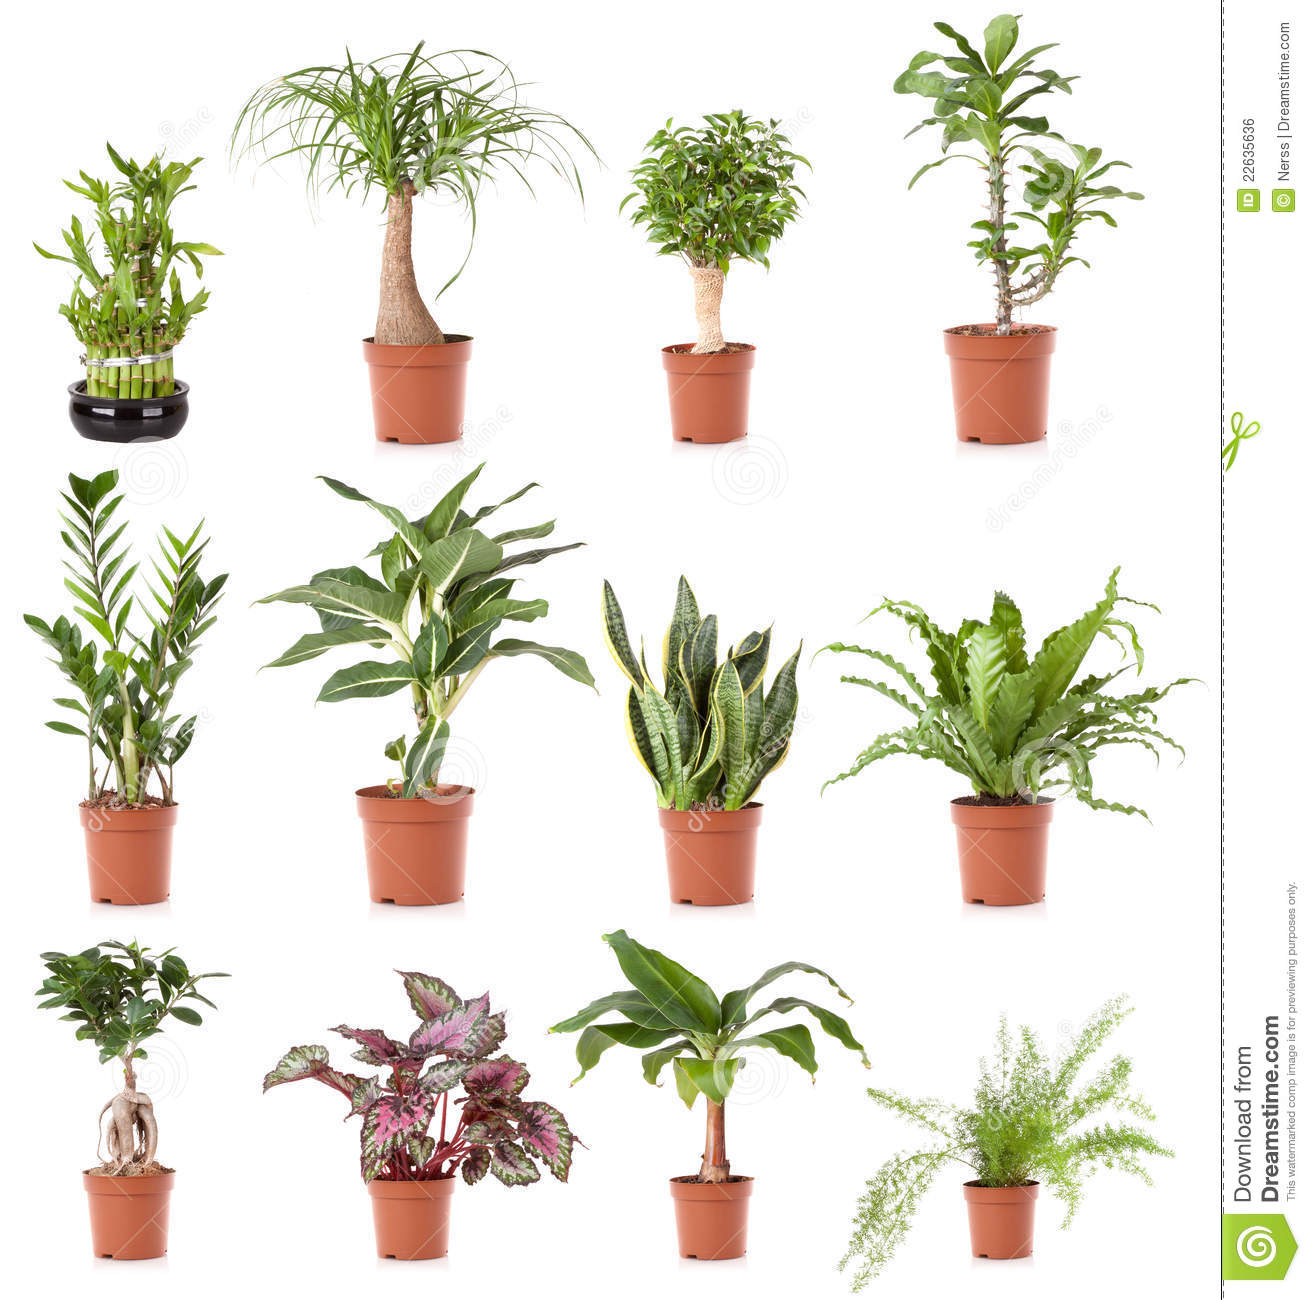 Maison de plante en pot photo stock image du l gant for Plante maison